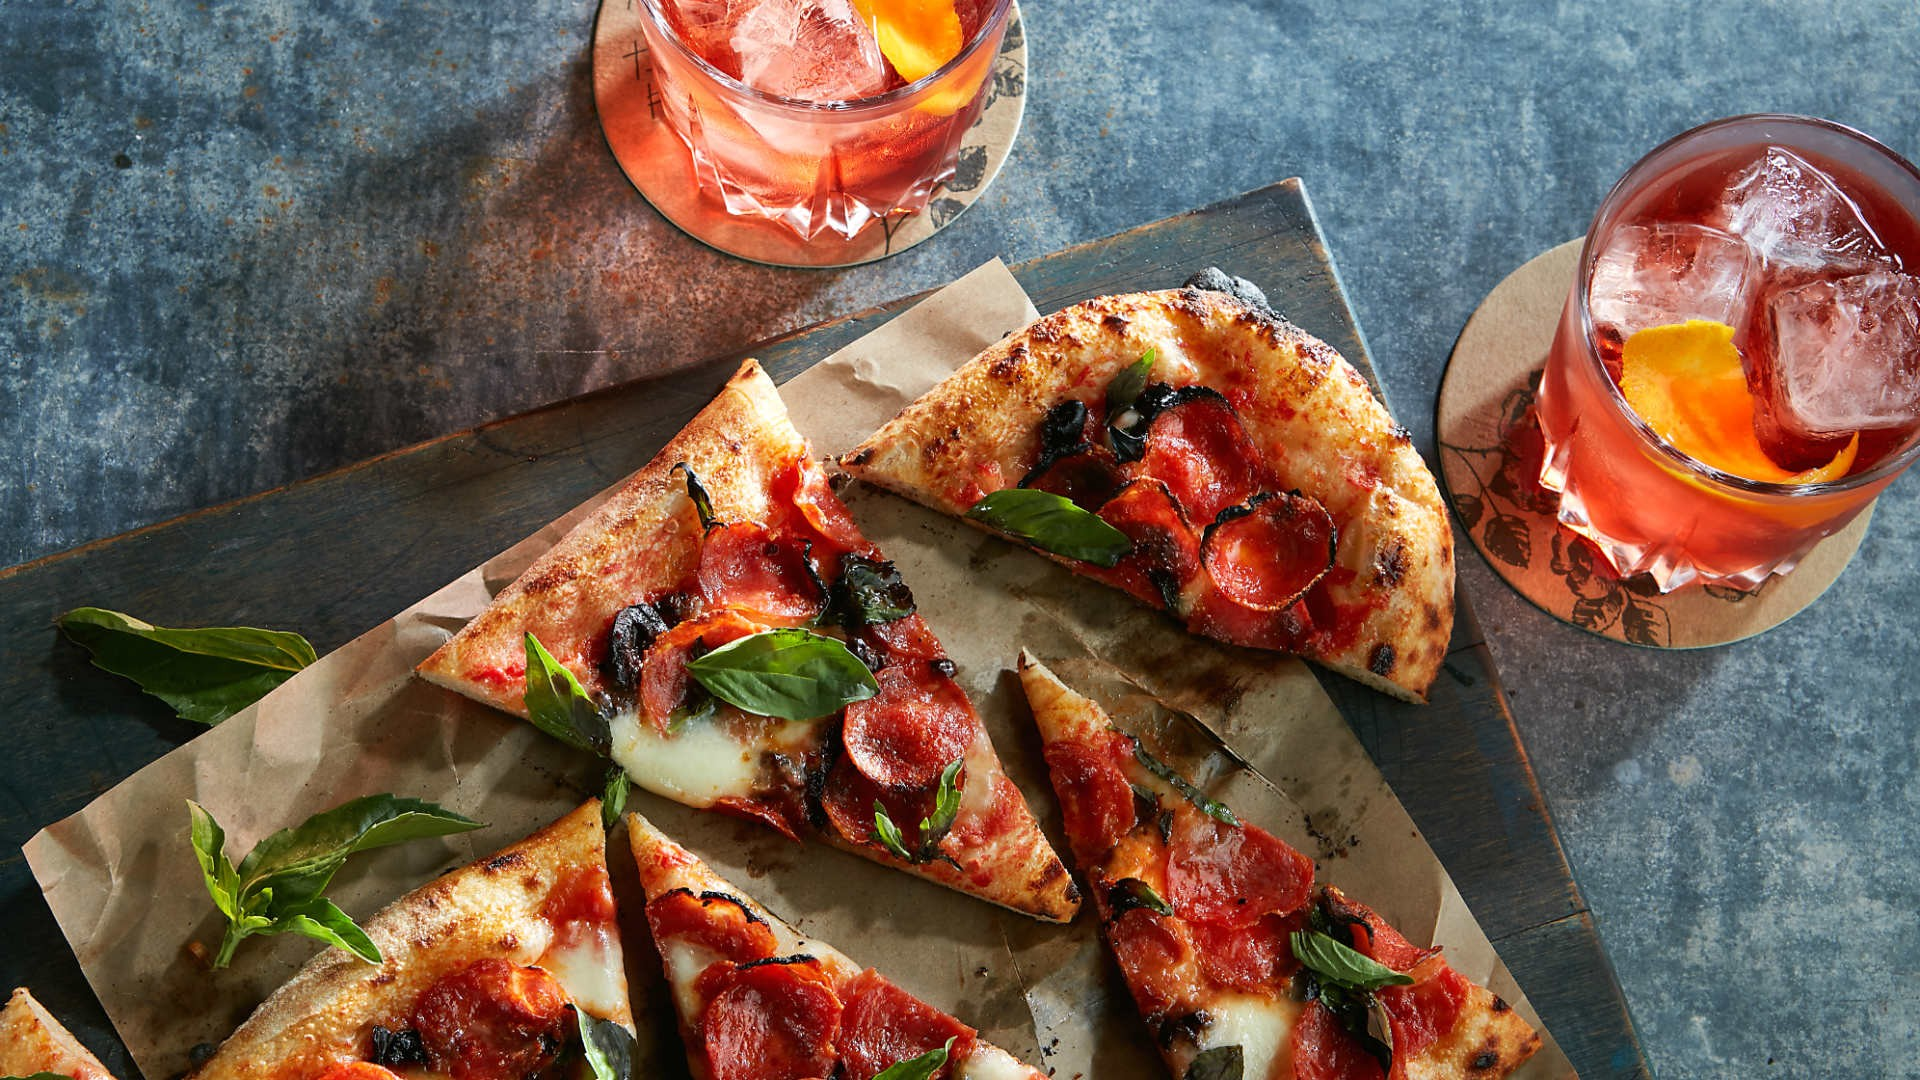 Hotel review: the Kimpton Saint George hotel, Toronto | Pizza from the Fortunate Fox